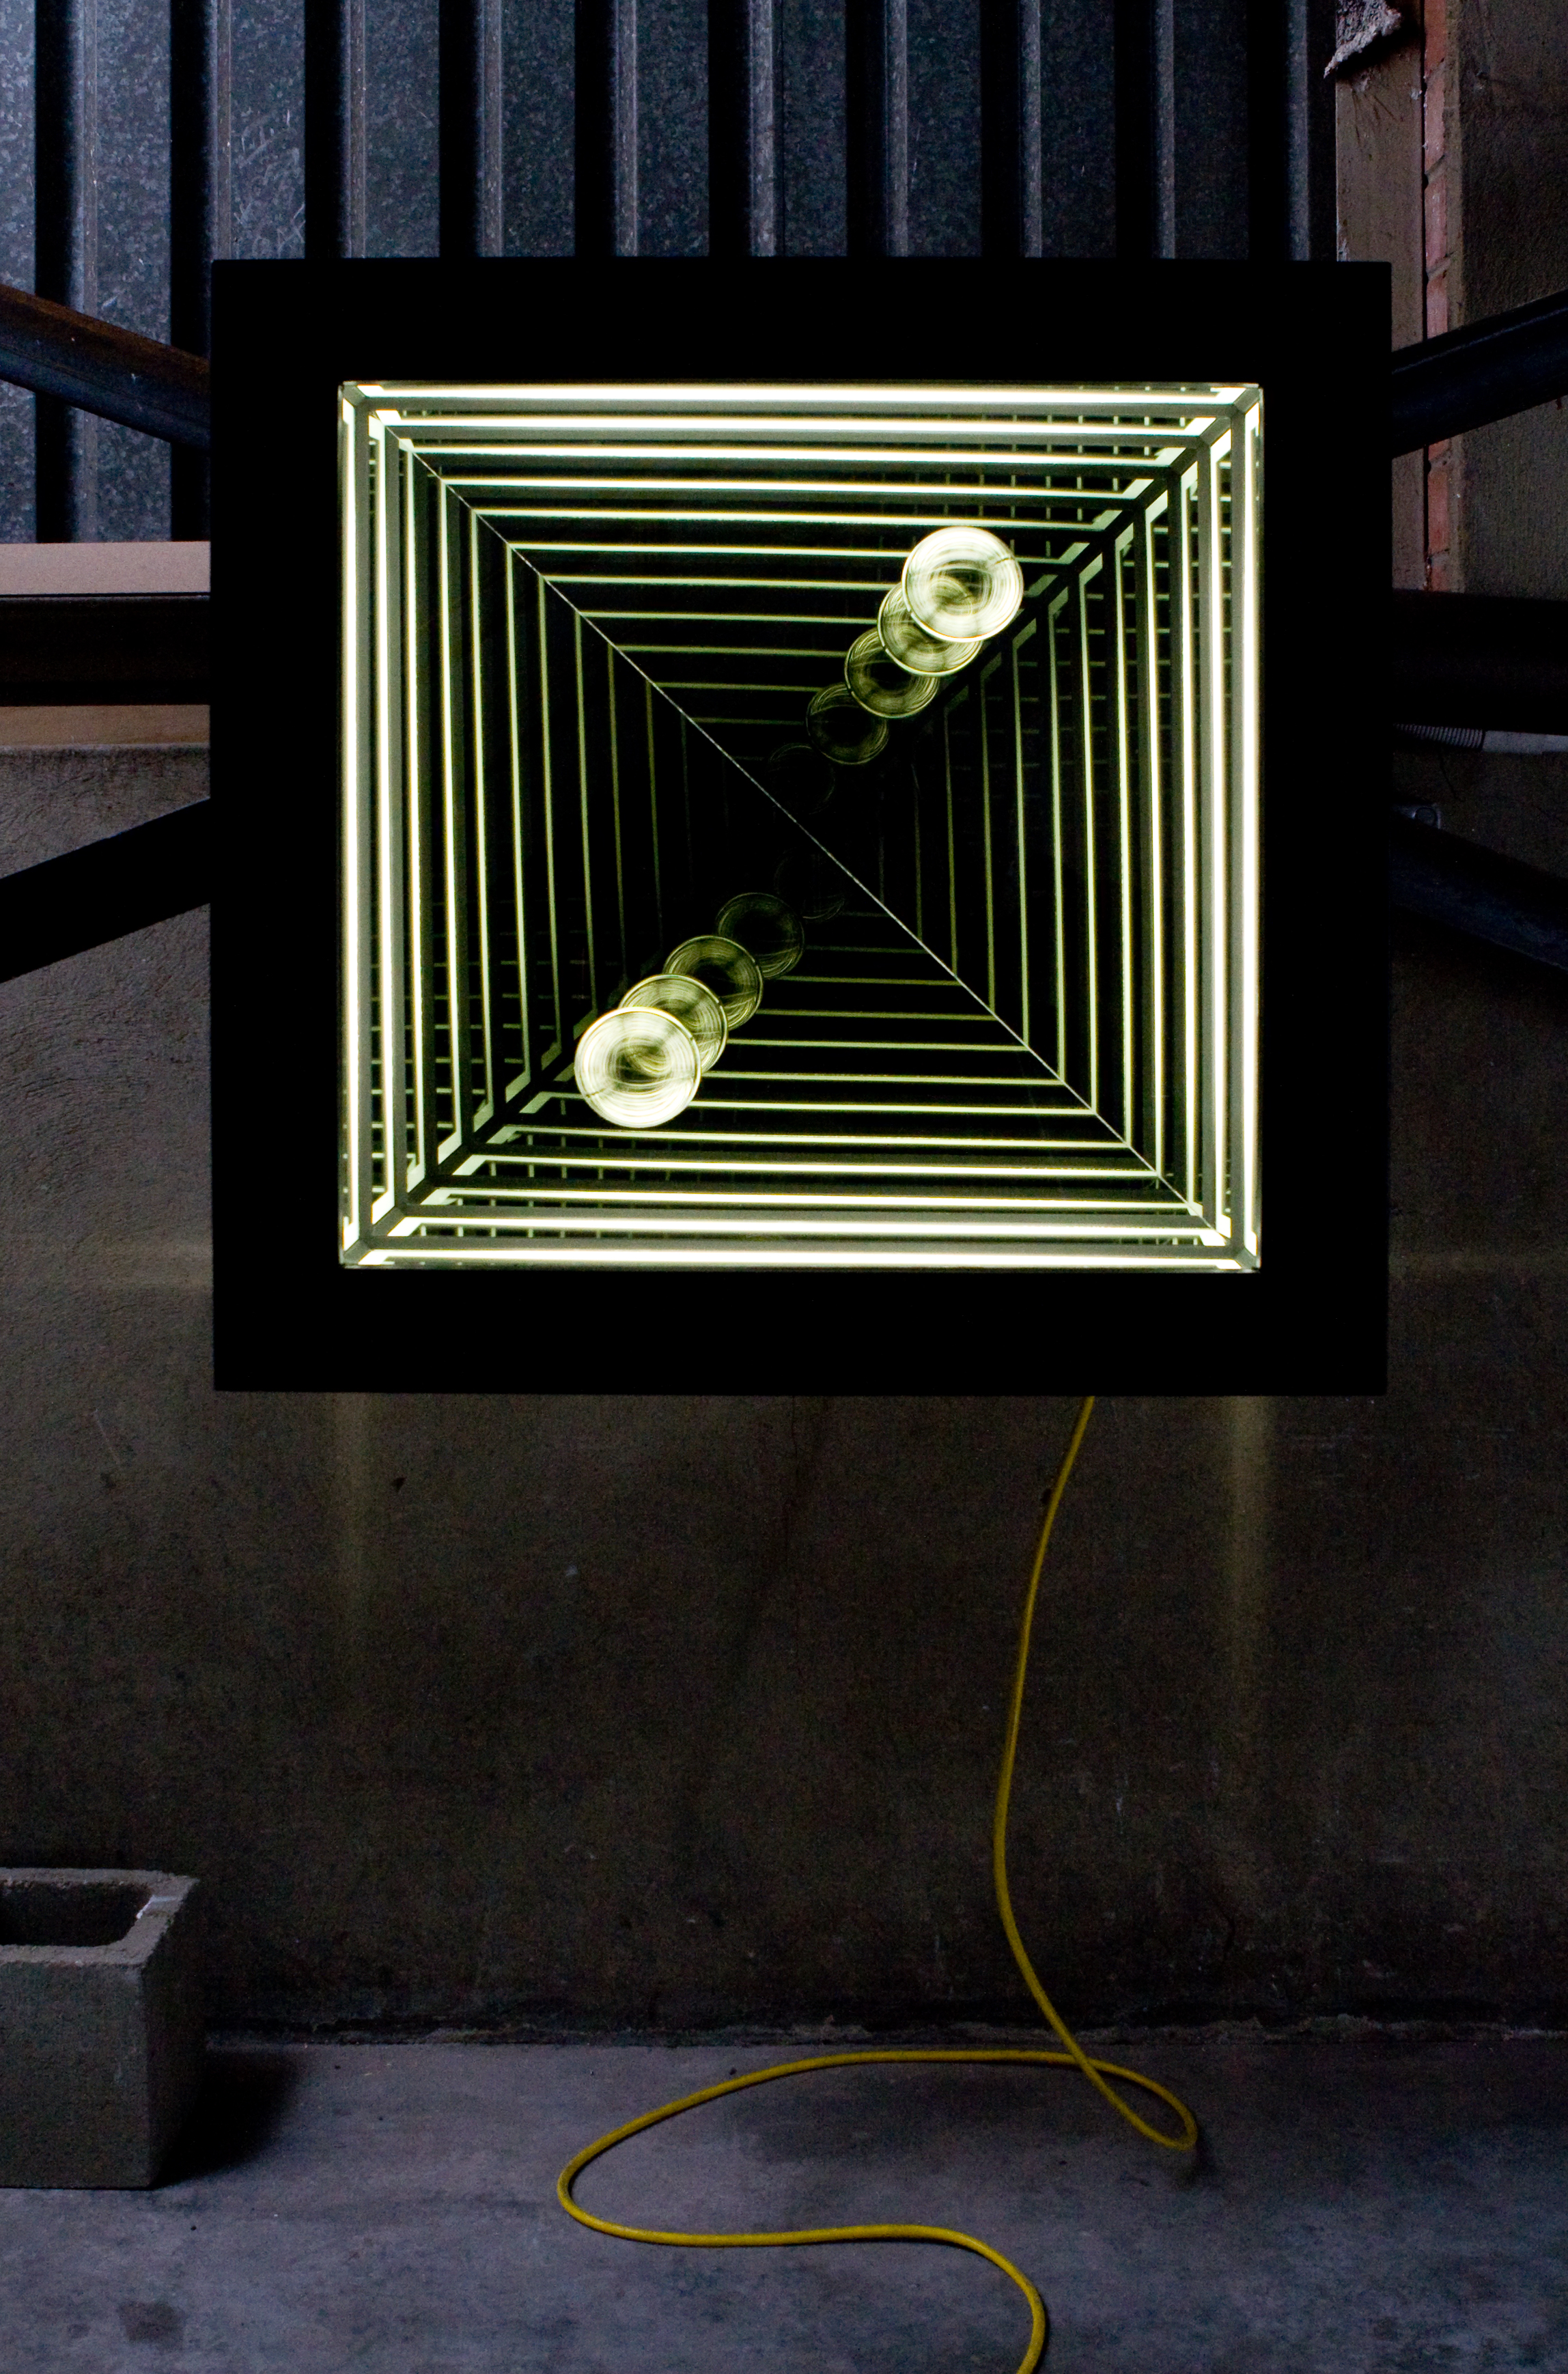 Passing III , wood, reflective glass, mirror, blown glass and fluorescent lights, 82 x 82 x 17cm. Photo: Pippy Mount.